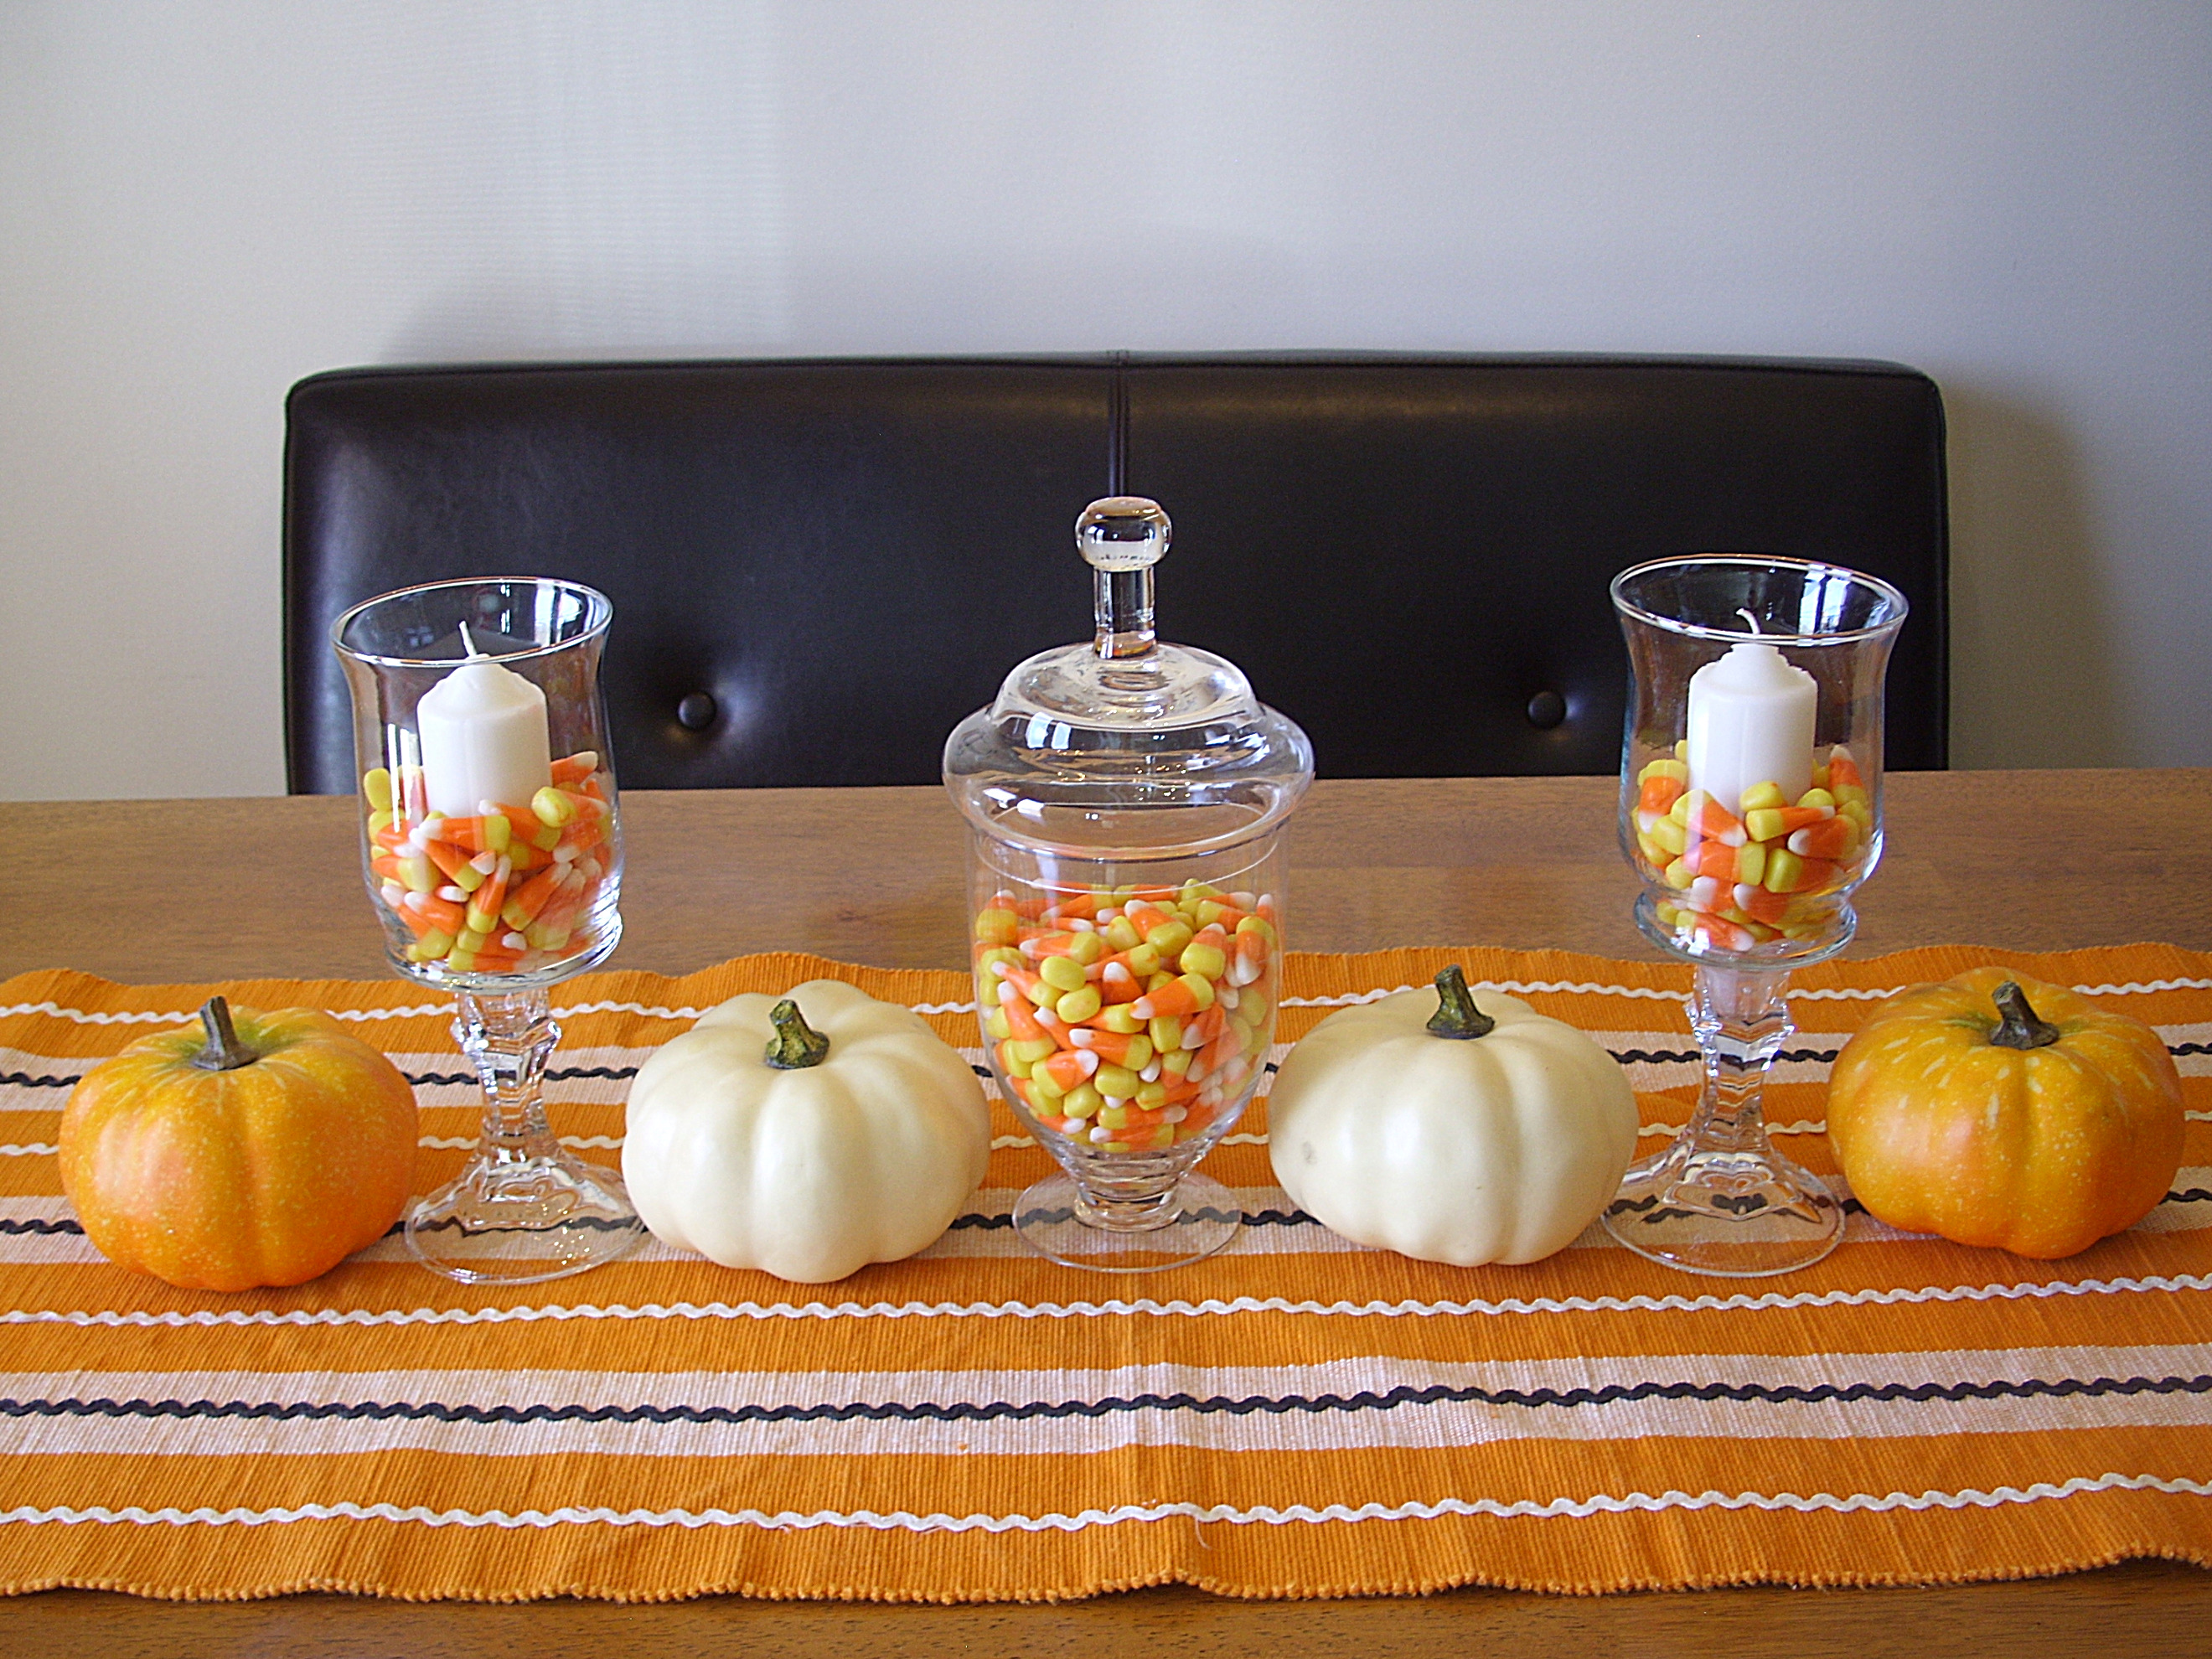 Halloween table decorations to make - Now